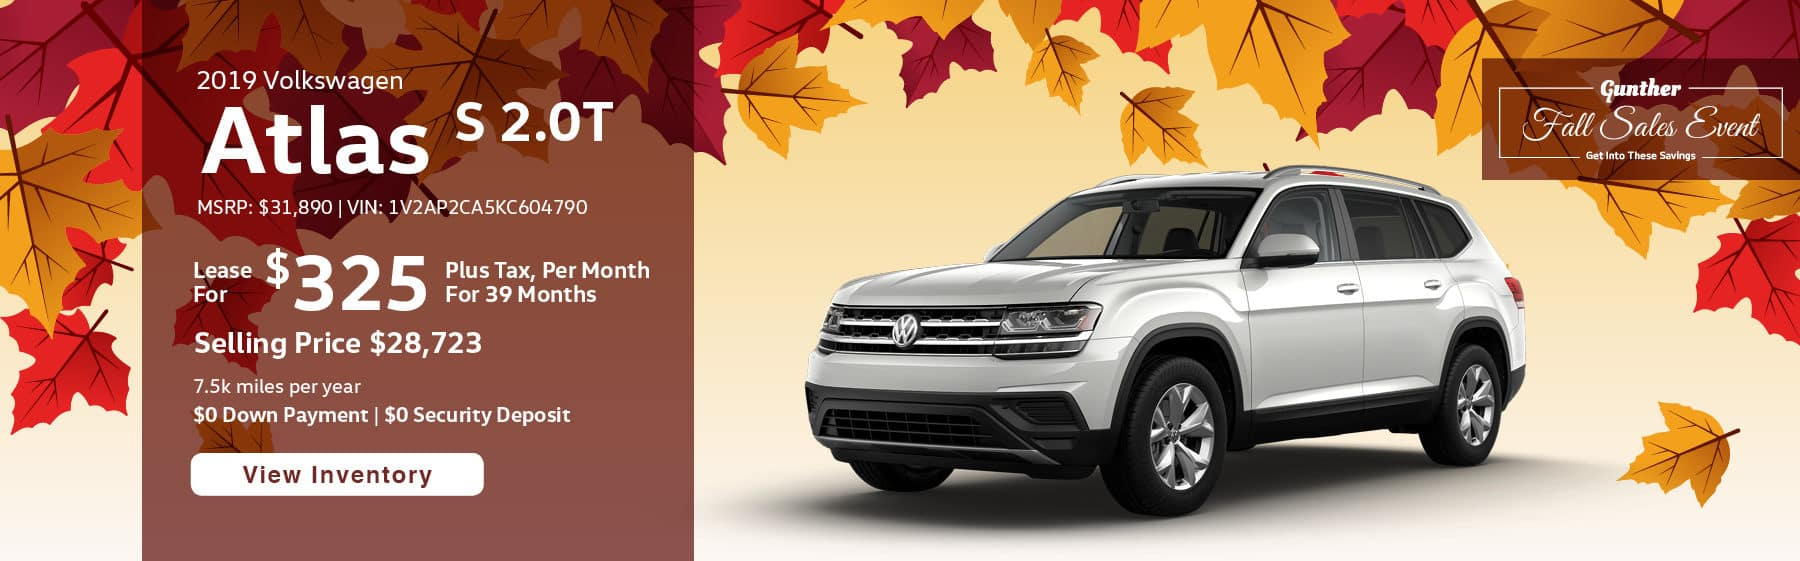 Lease the 2019 Atlas S 2.0T for $325 per month, plus tax for 39 months.